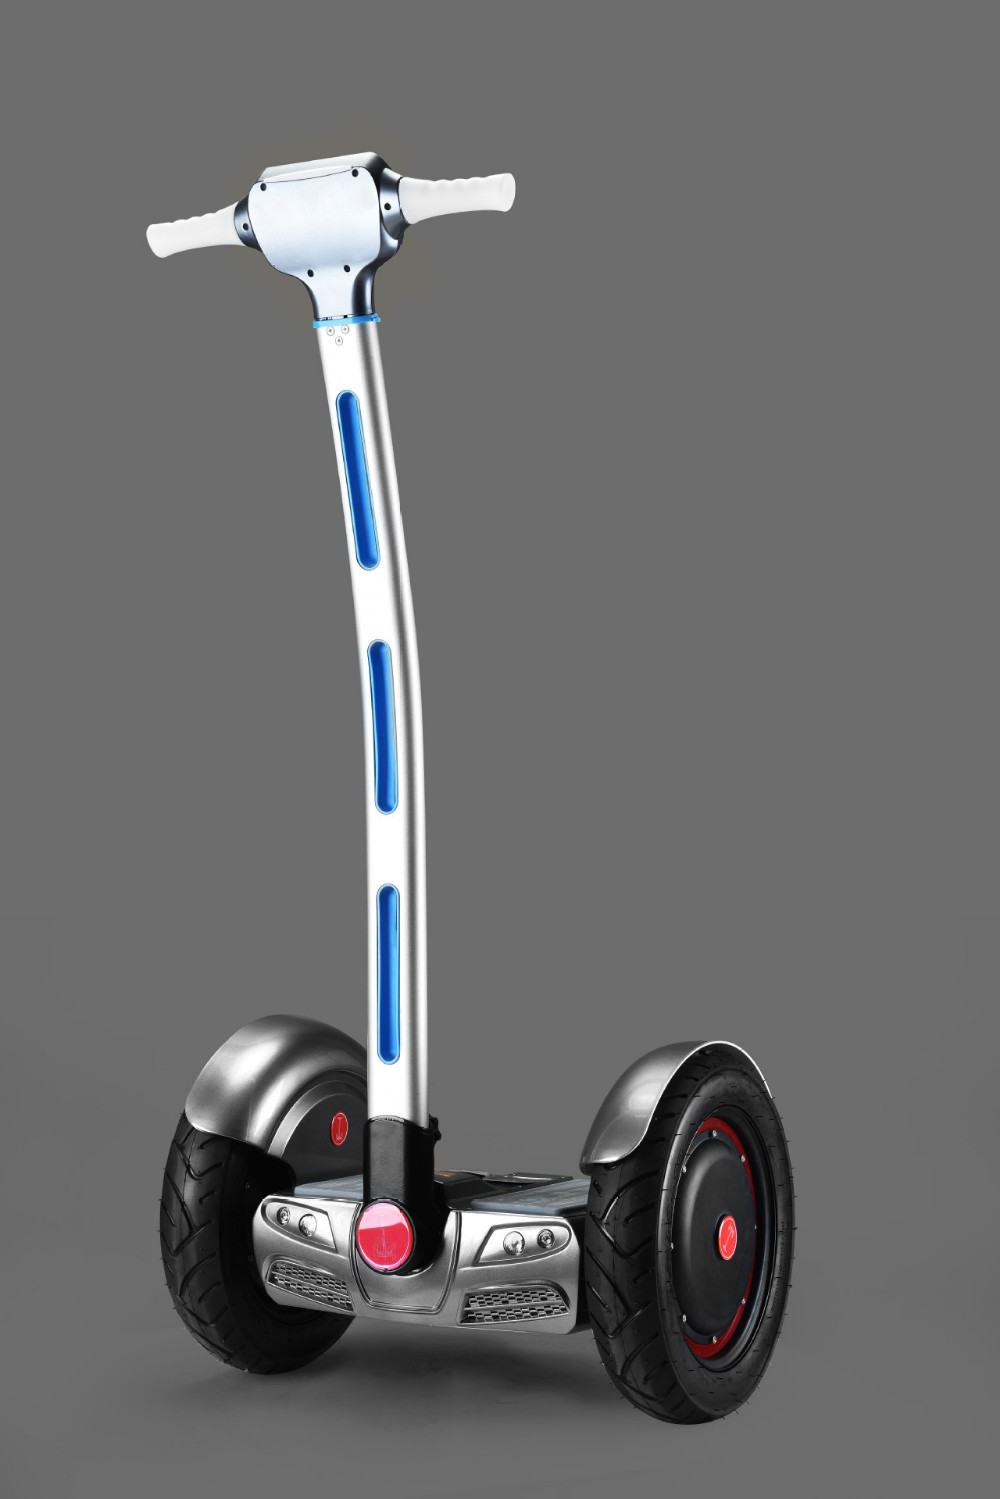 A6-1000W-Two-Wheel-Handrail-Electric-Standing-Bicycle-Smart-Balance-Wheel-Electric-Scooter  (46)